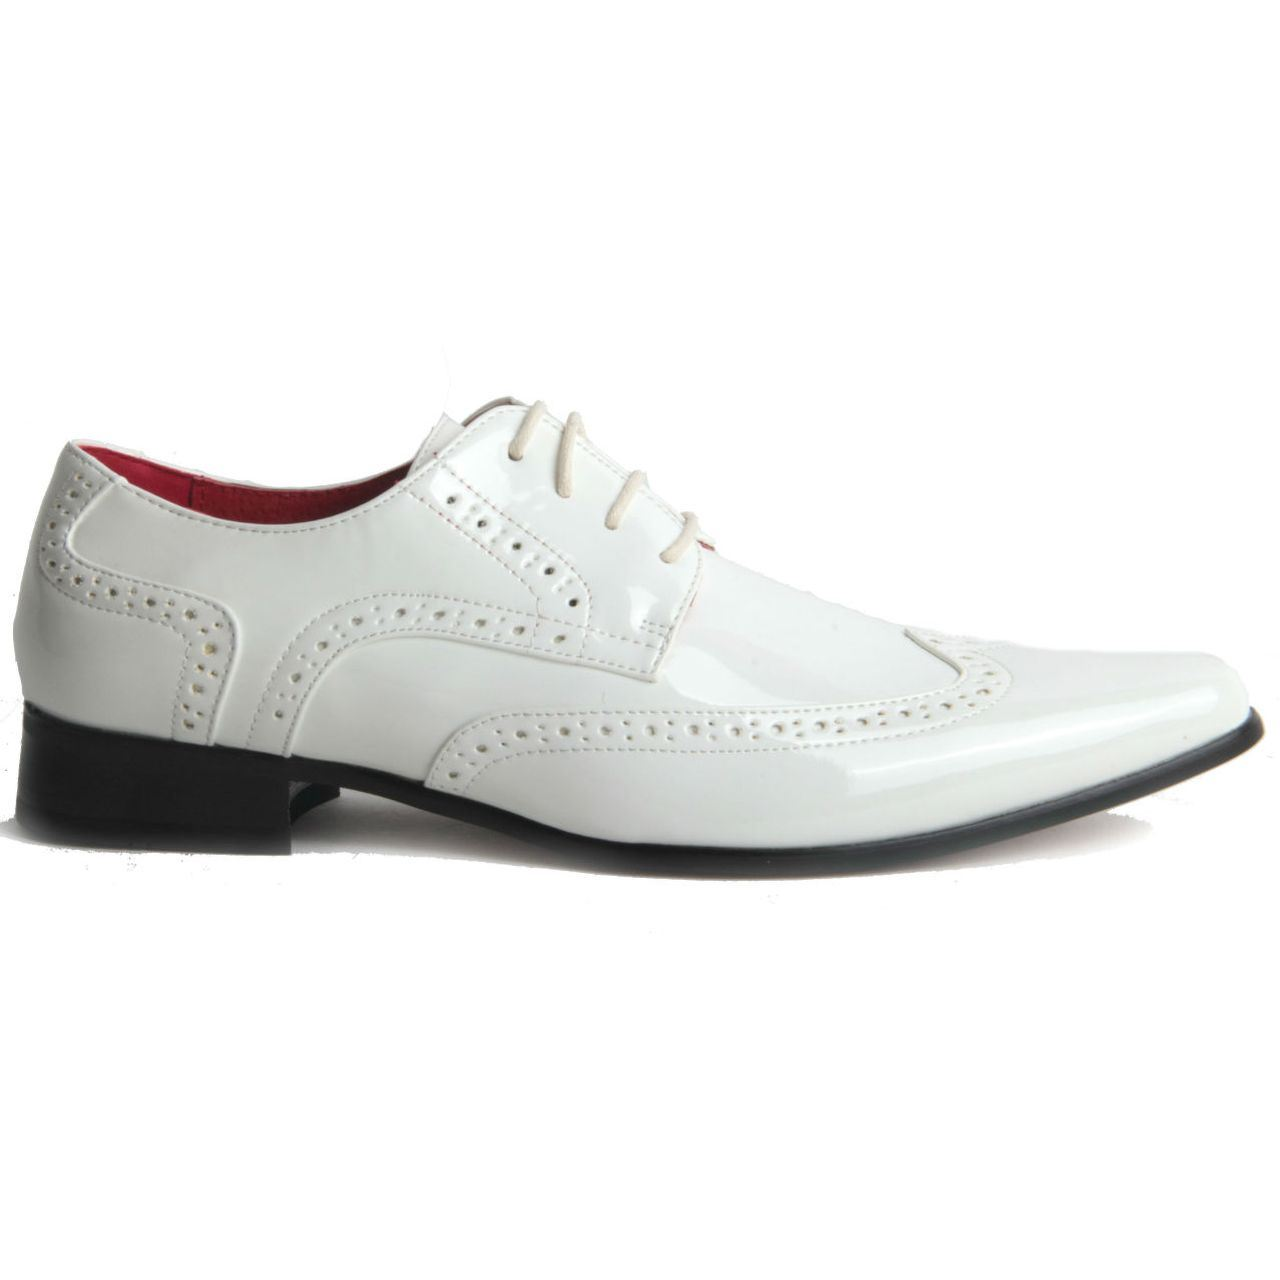 Mens-Smart-Lace-Up-Pointed-Toe-Brogue-Formal-Patent-Leather-Lined-Shoes thumbnail 12